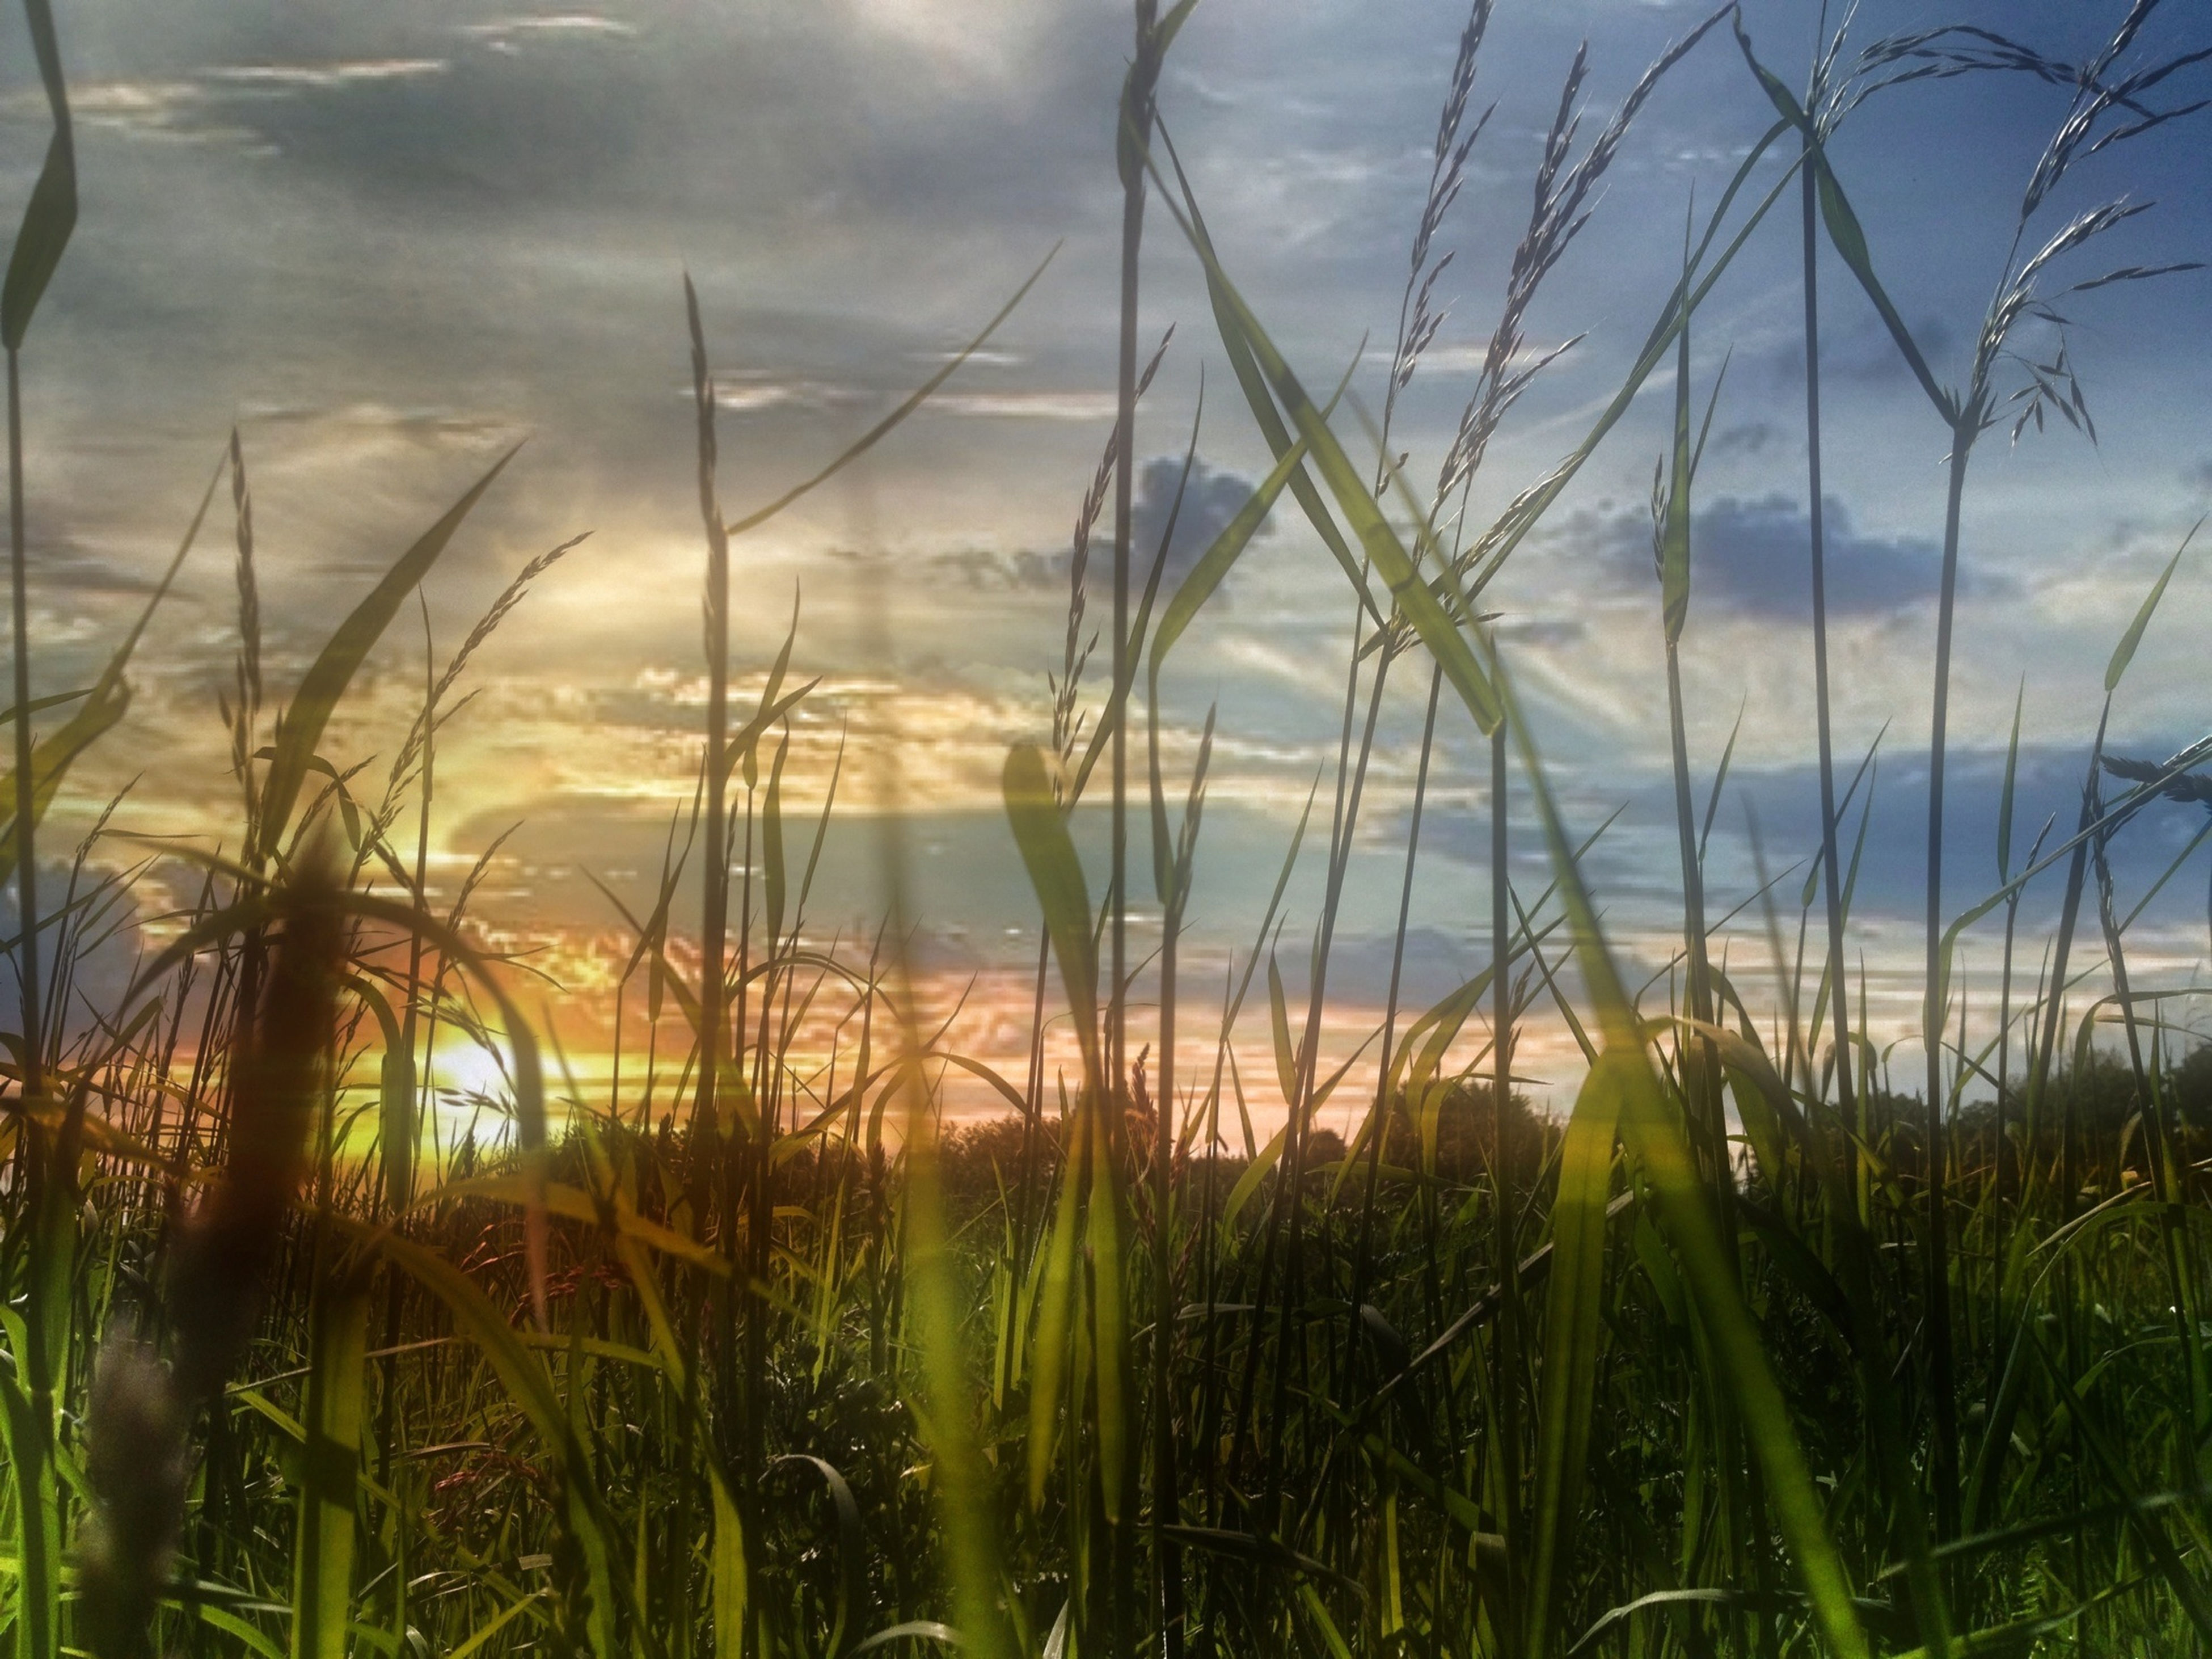 grass, sky, tranquility, tranquil scene, water, plant, scenics, beauty in nature, growth, nature, cloud - sky, cloud, cloudy, sunset, idyllic, sea, field, horizon over water, outdoors, growing